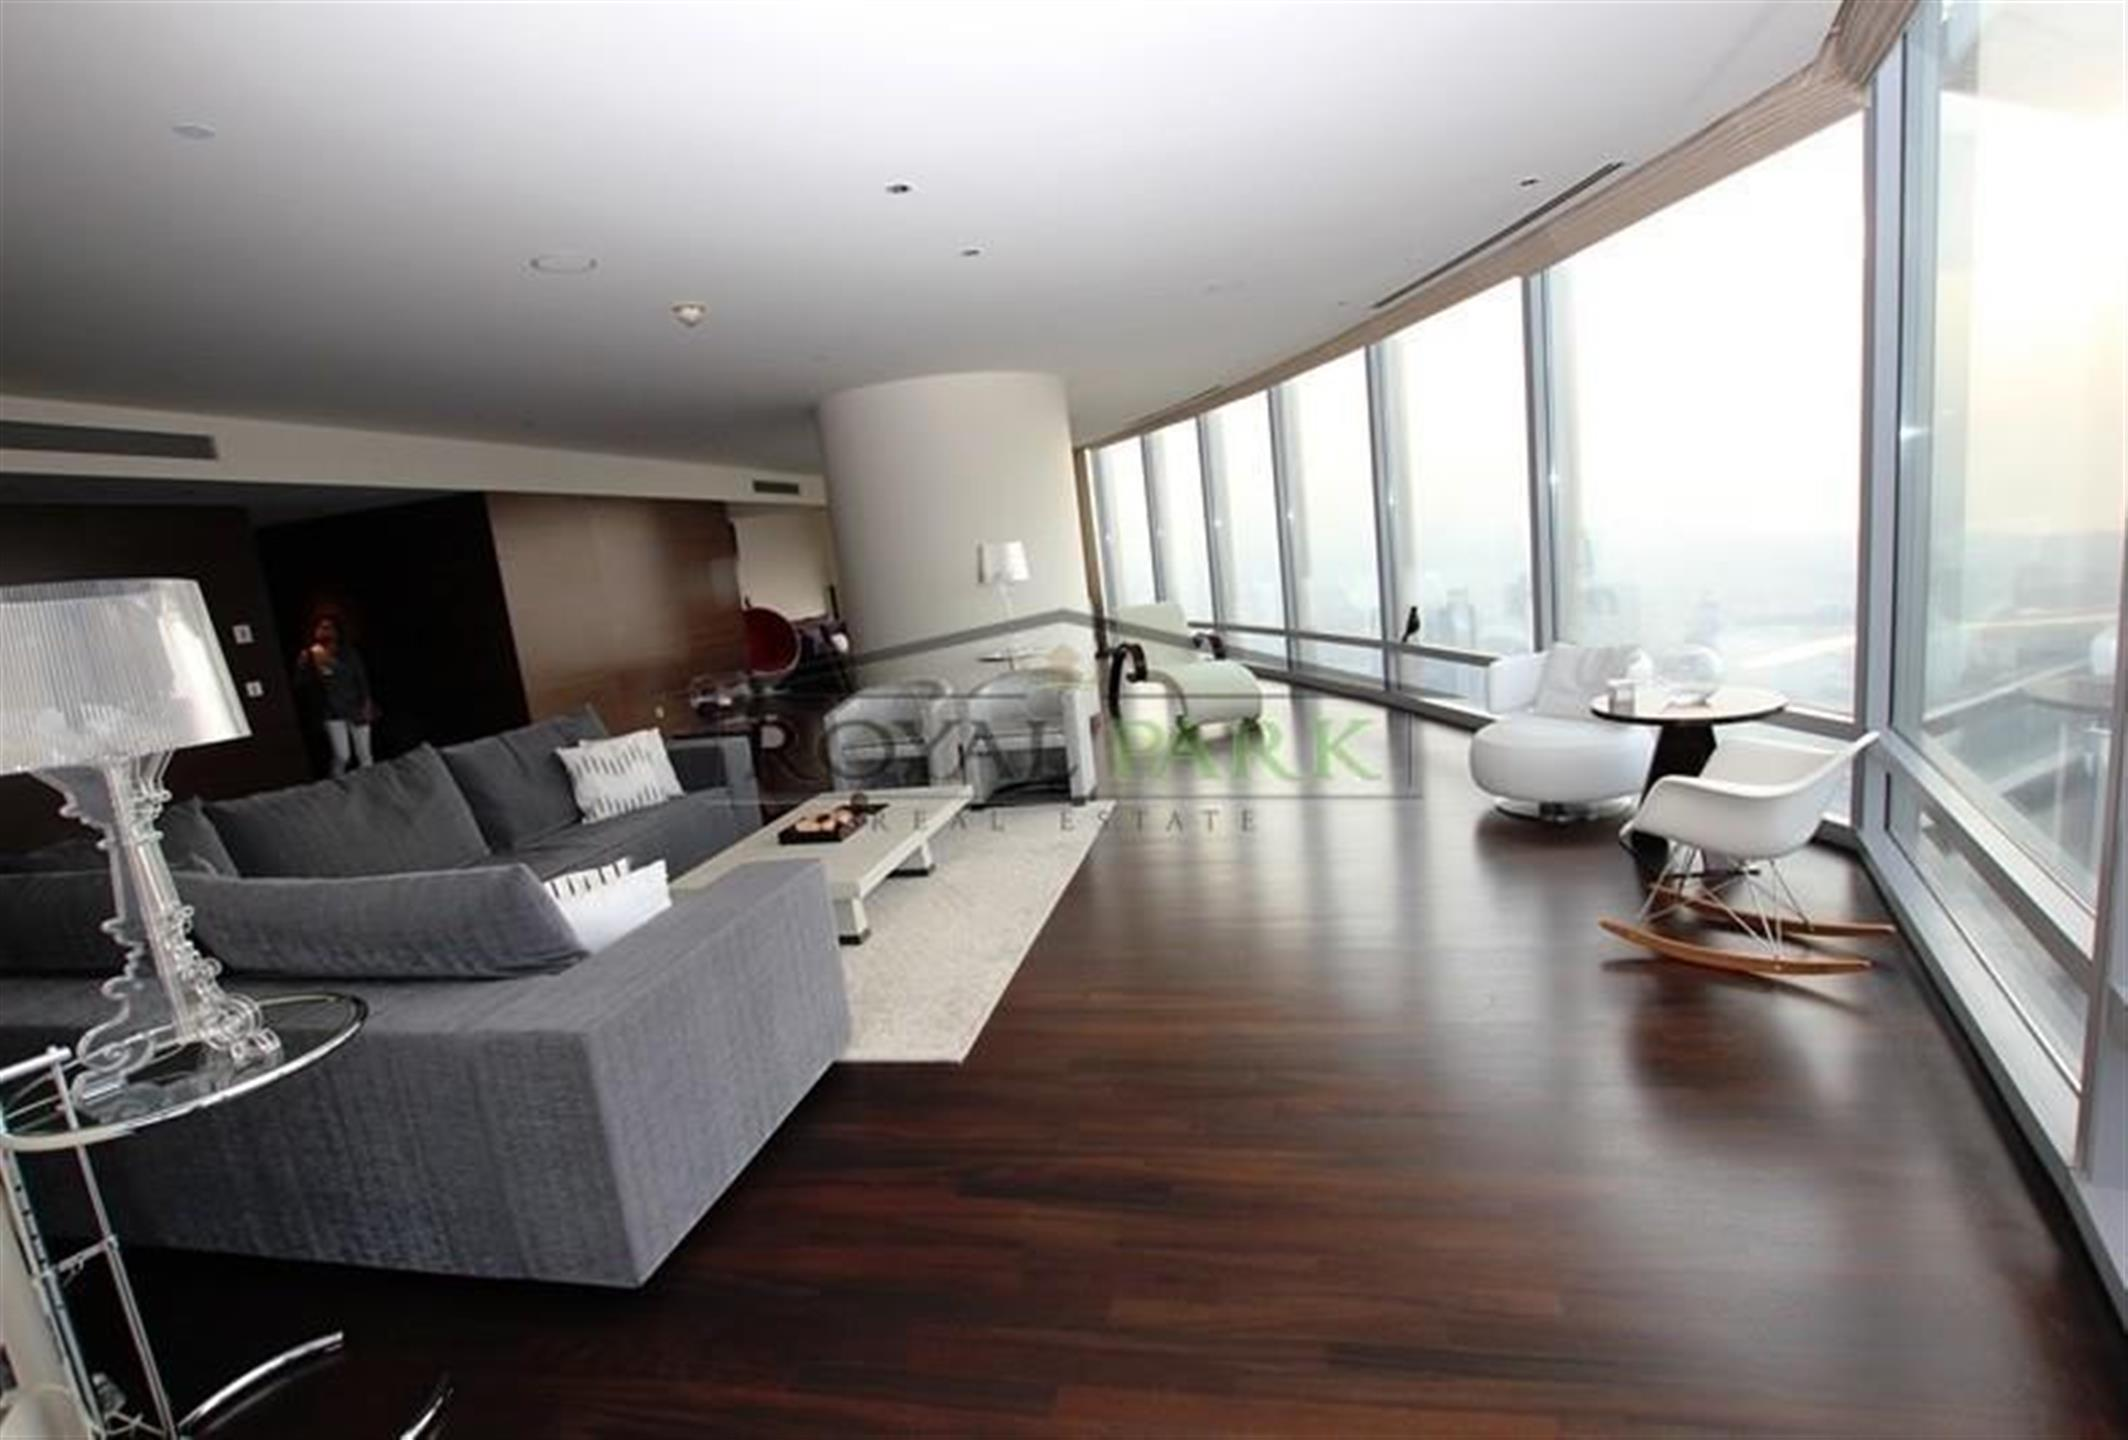 Unforgettable Ocean And Dubai City View, Rare Unit 4br With Iconic Address.